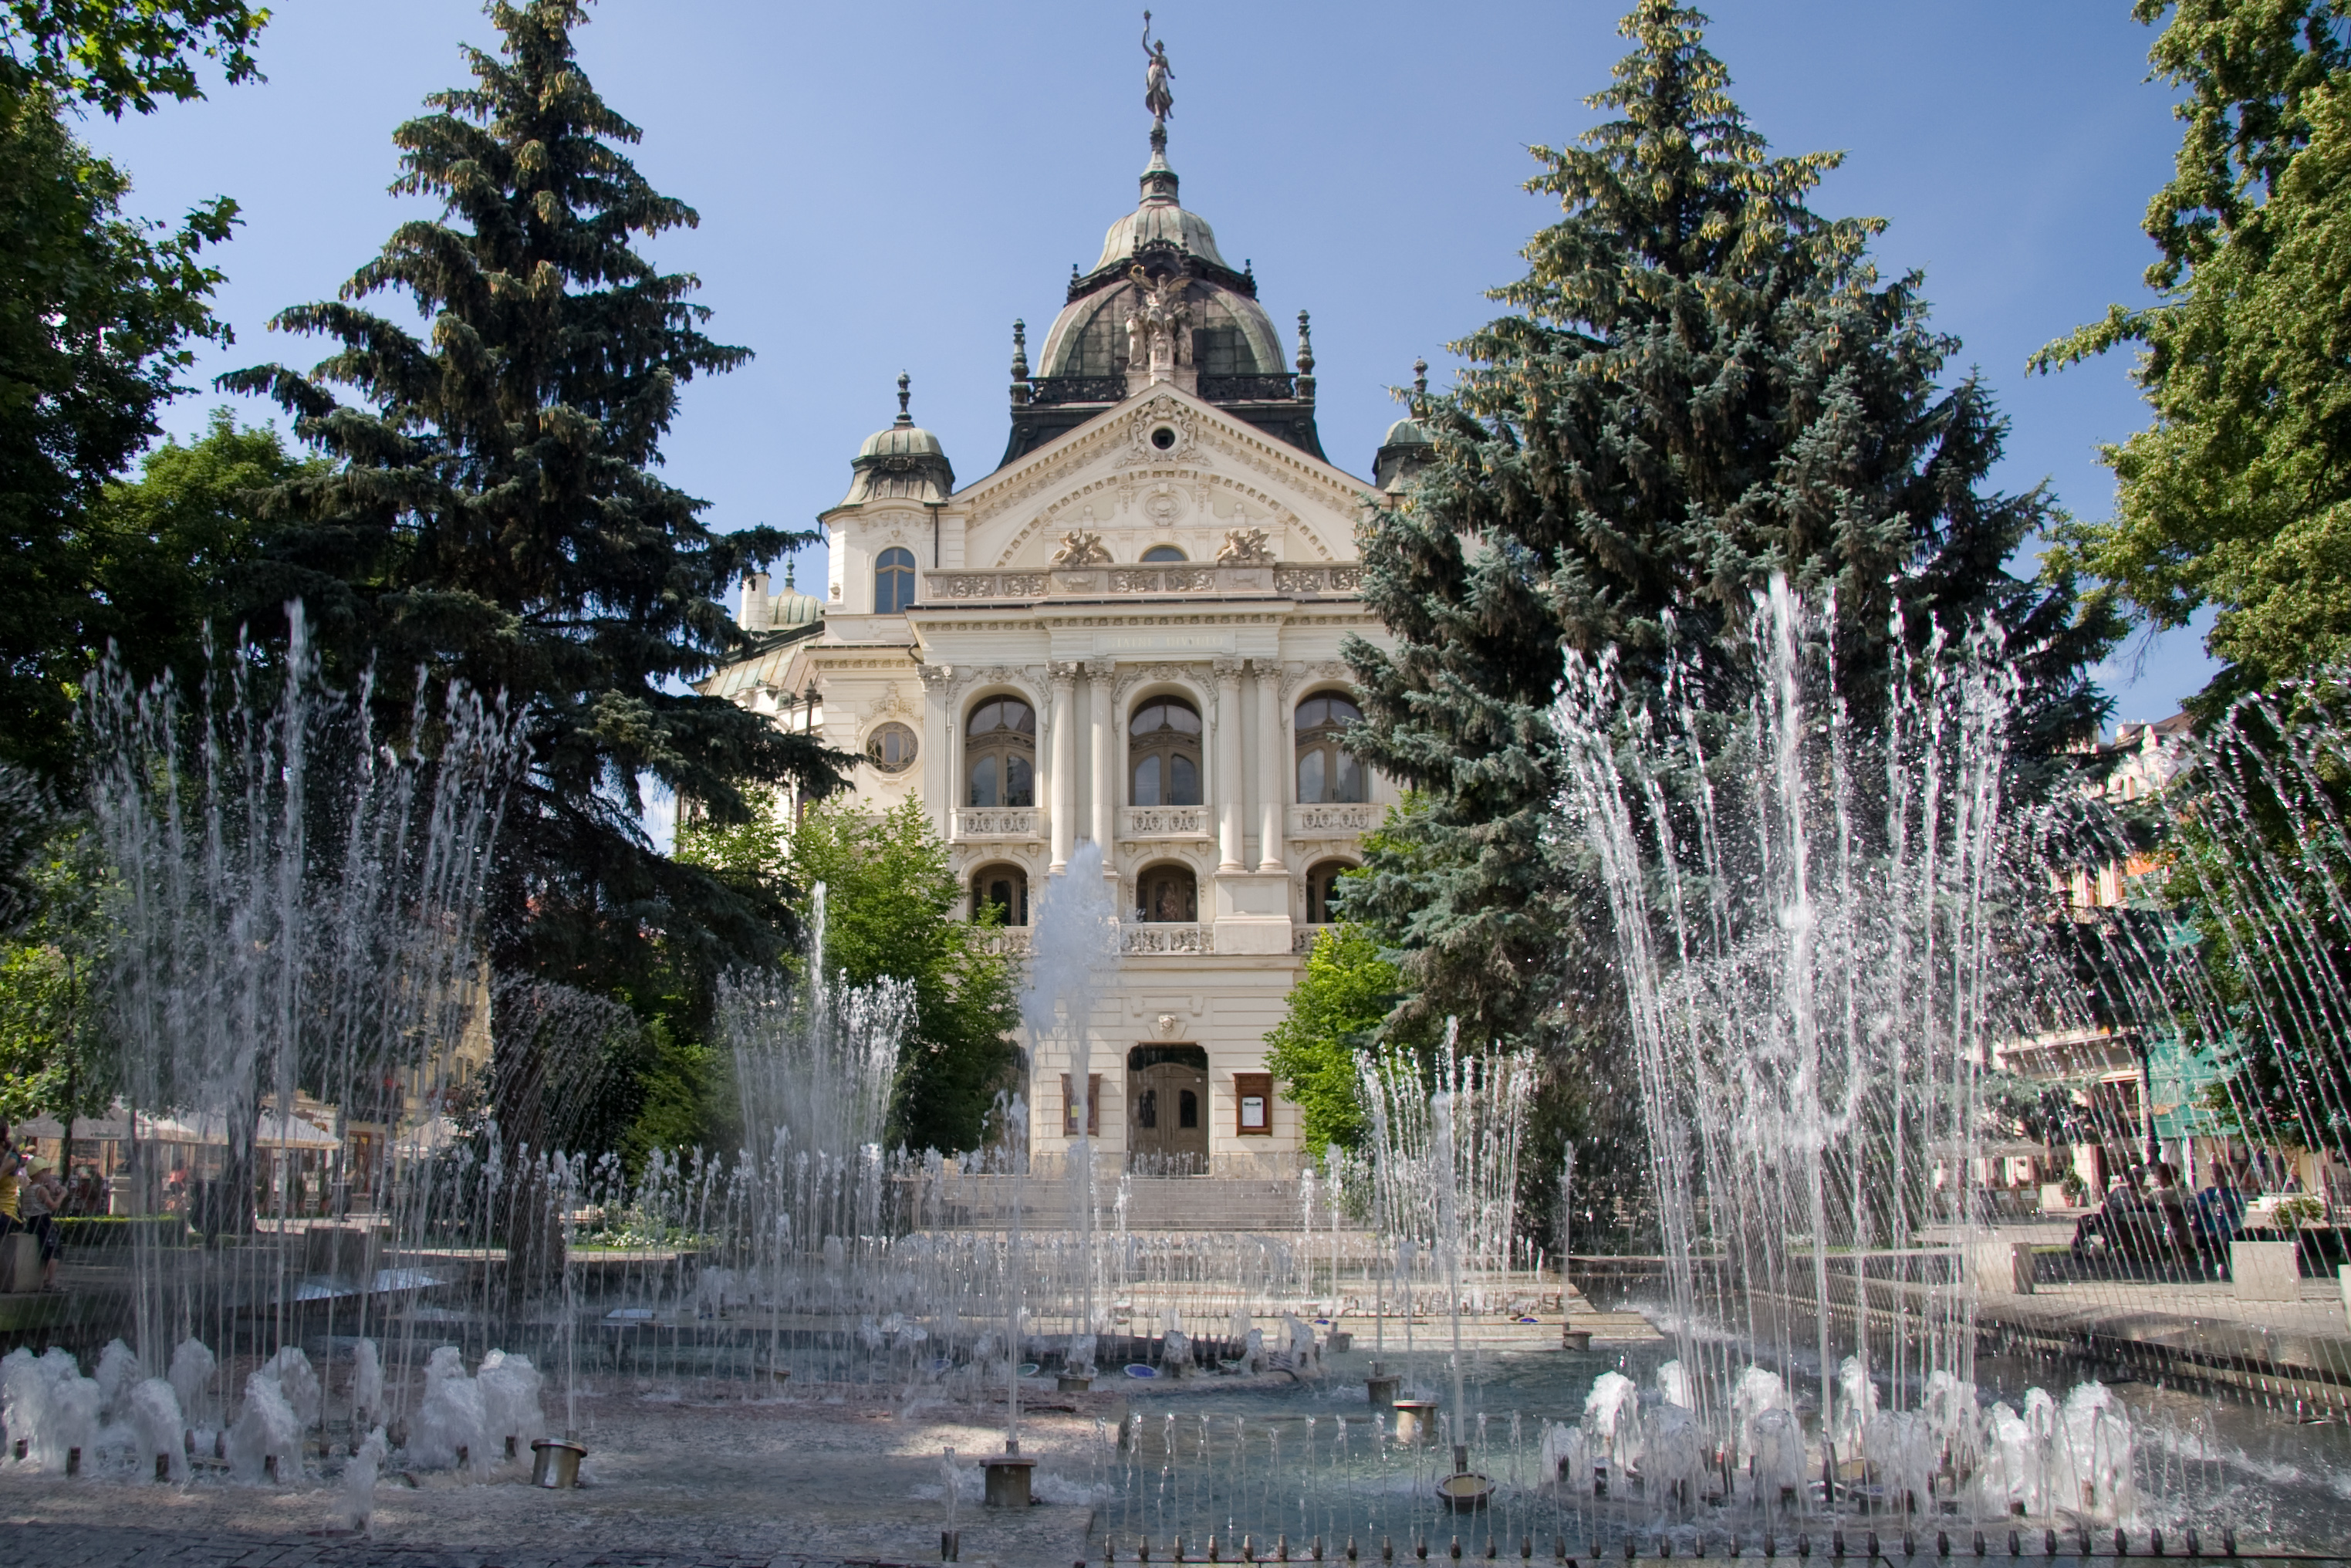 Koice Town Places To Visit In Koice Slovakia